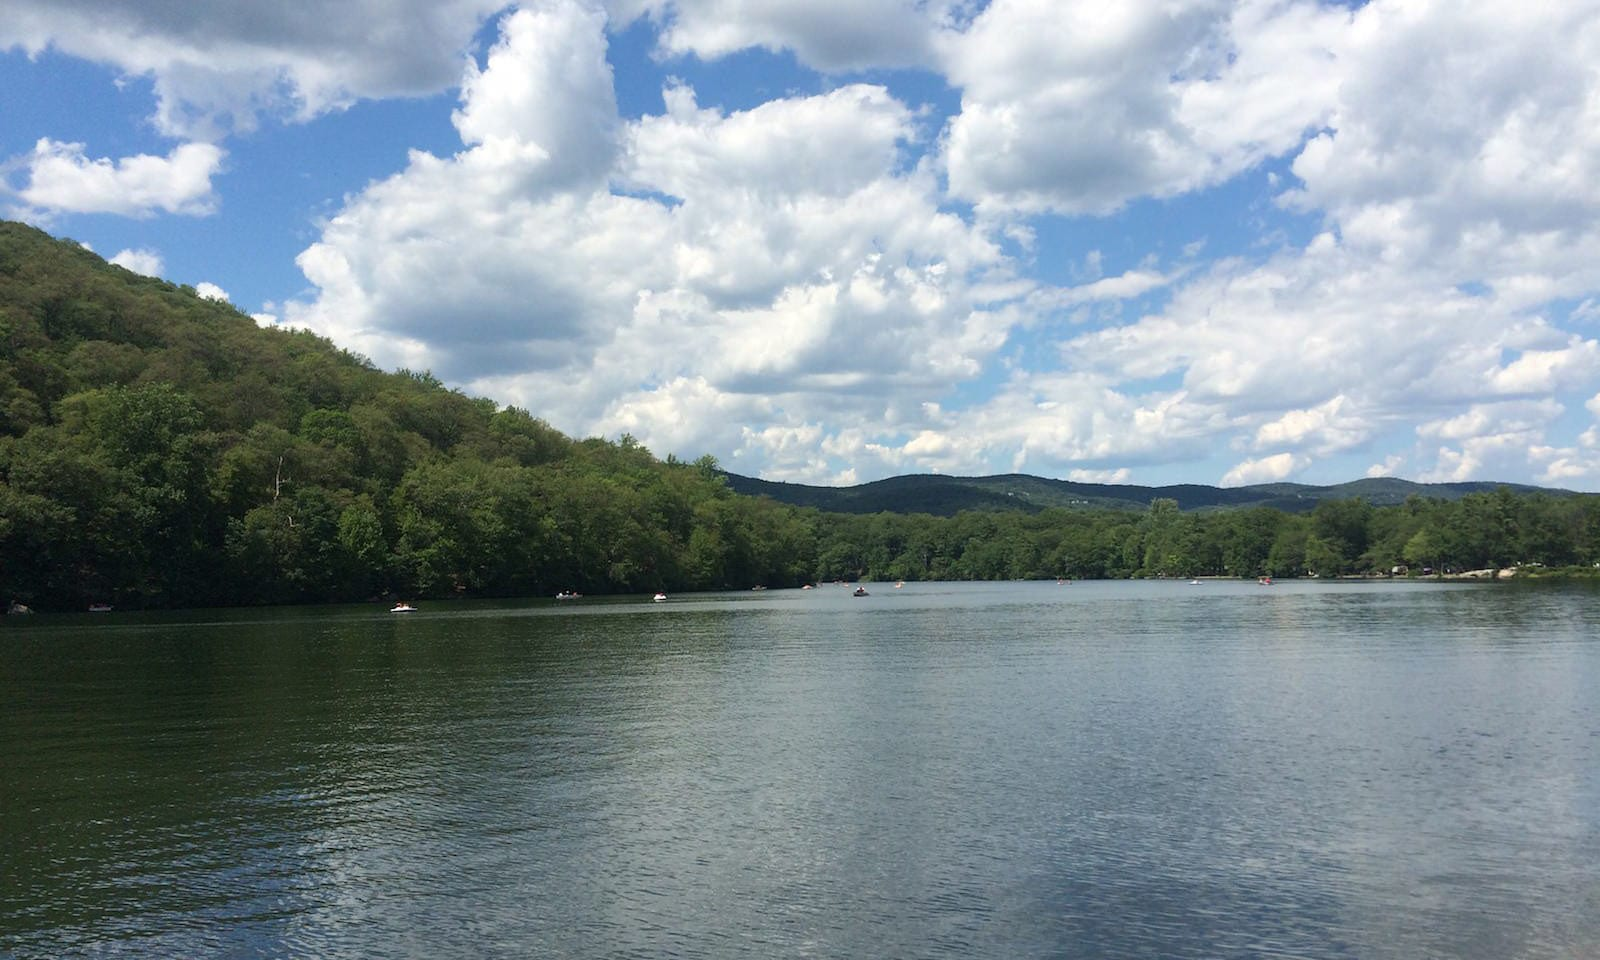 bear mountain state park by the water